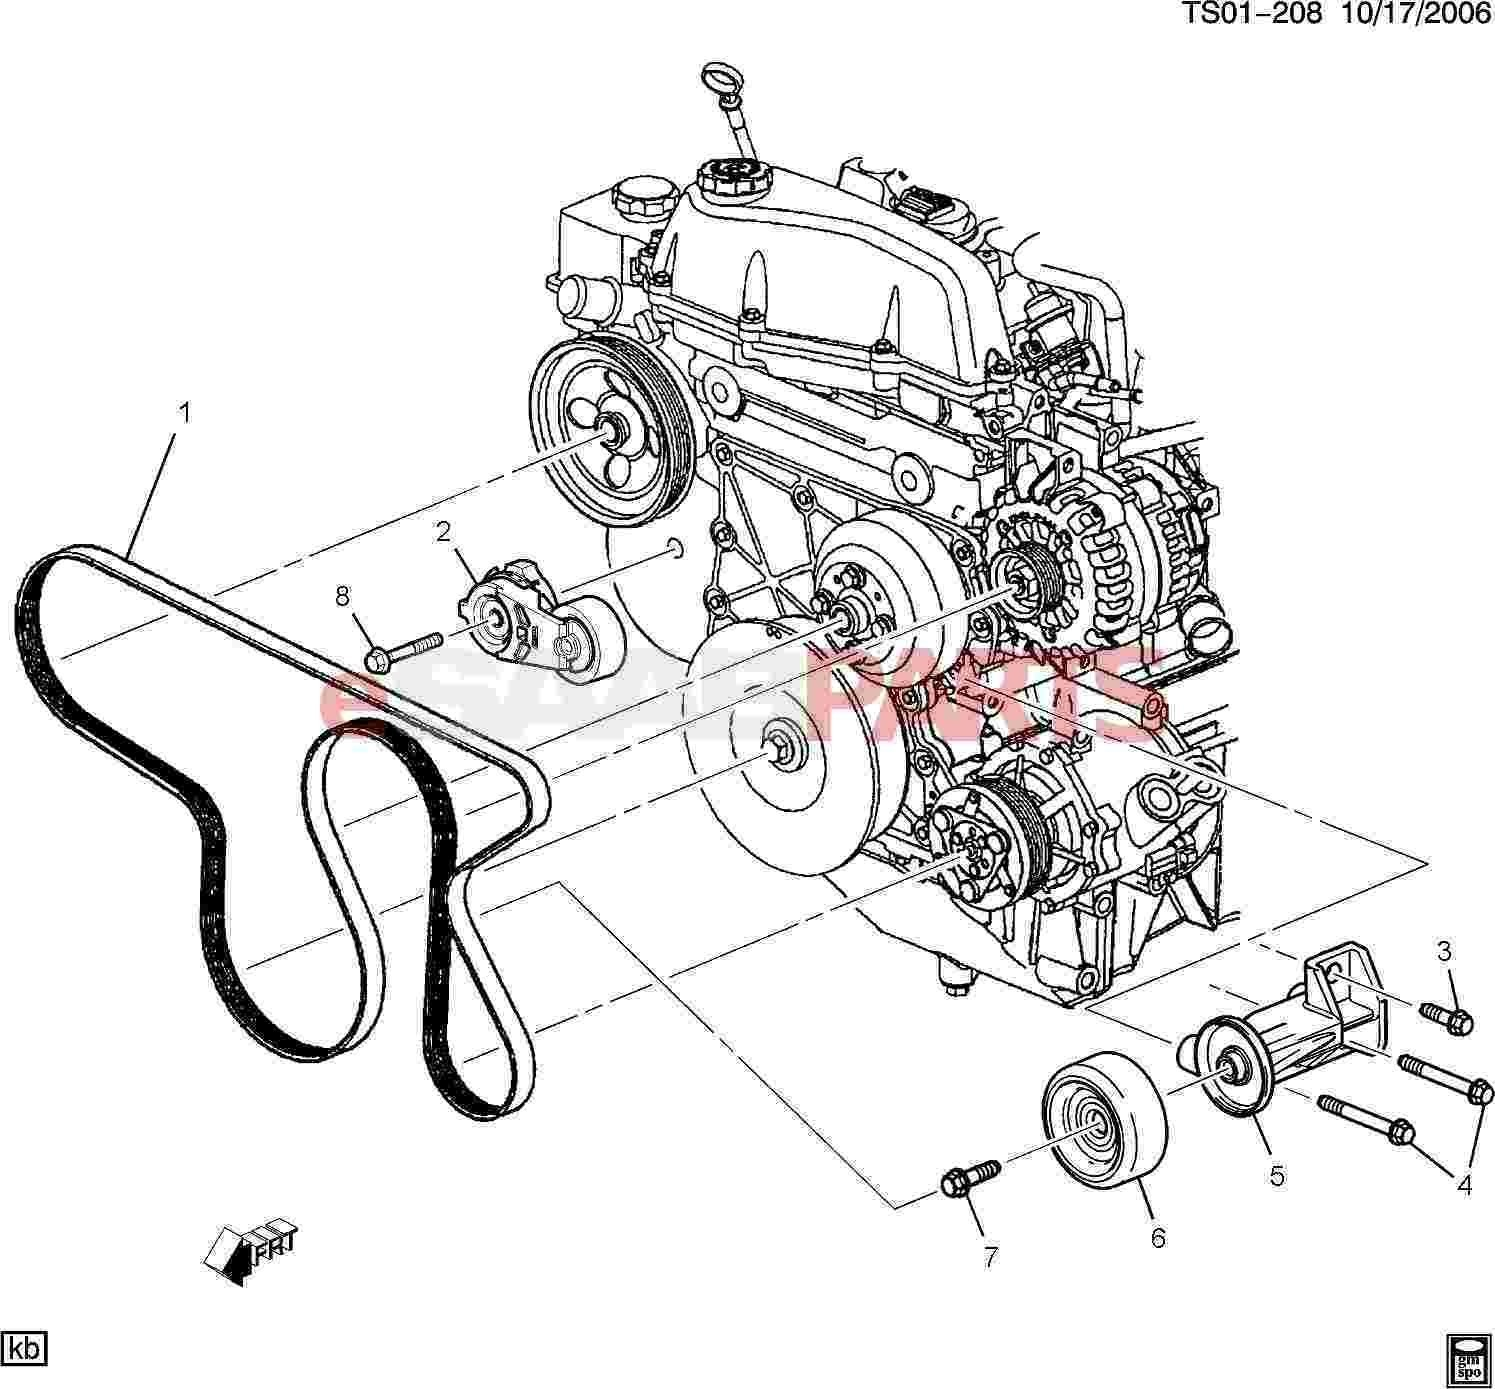 Wiring Diagram PDF: 2002 Silverado Engine Diagram